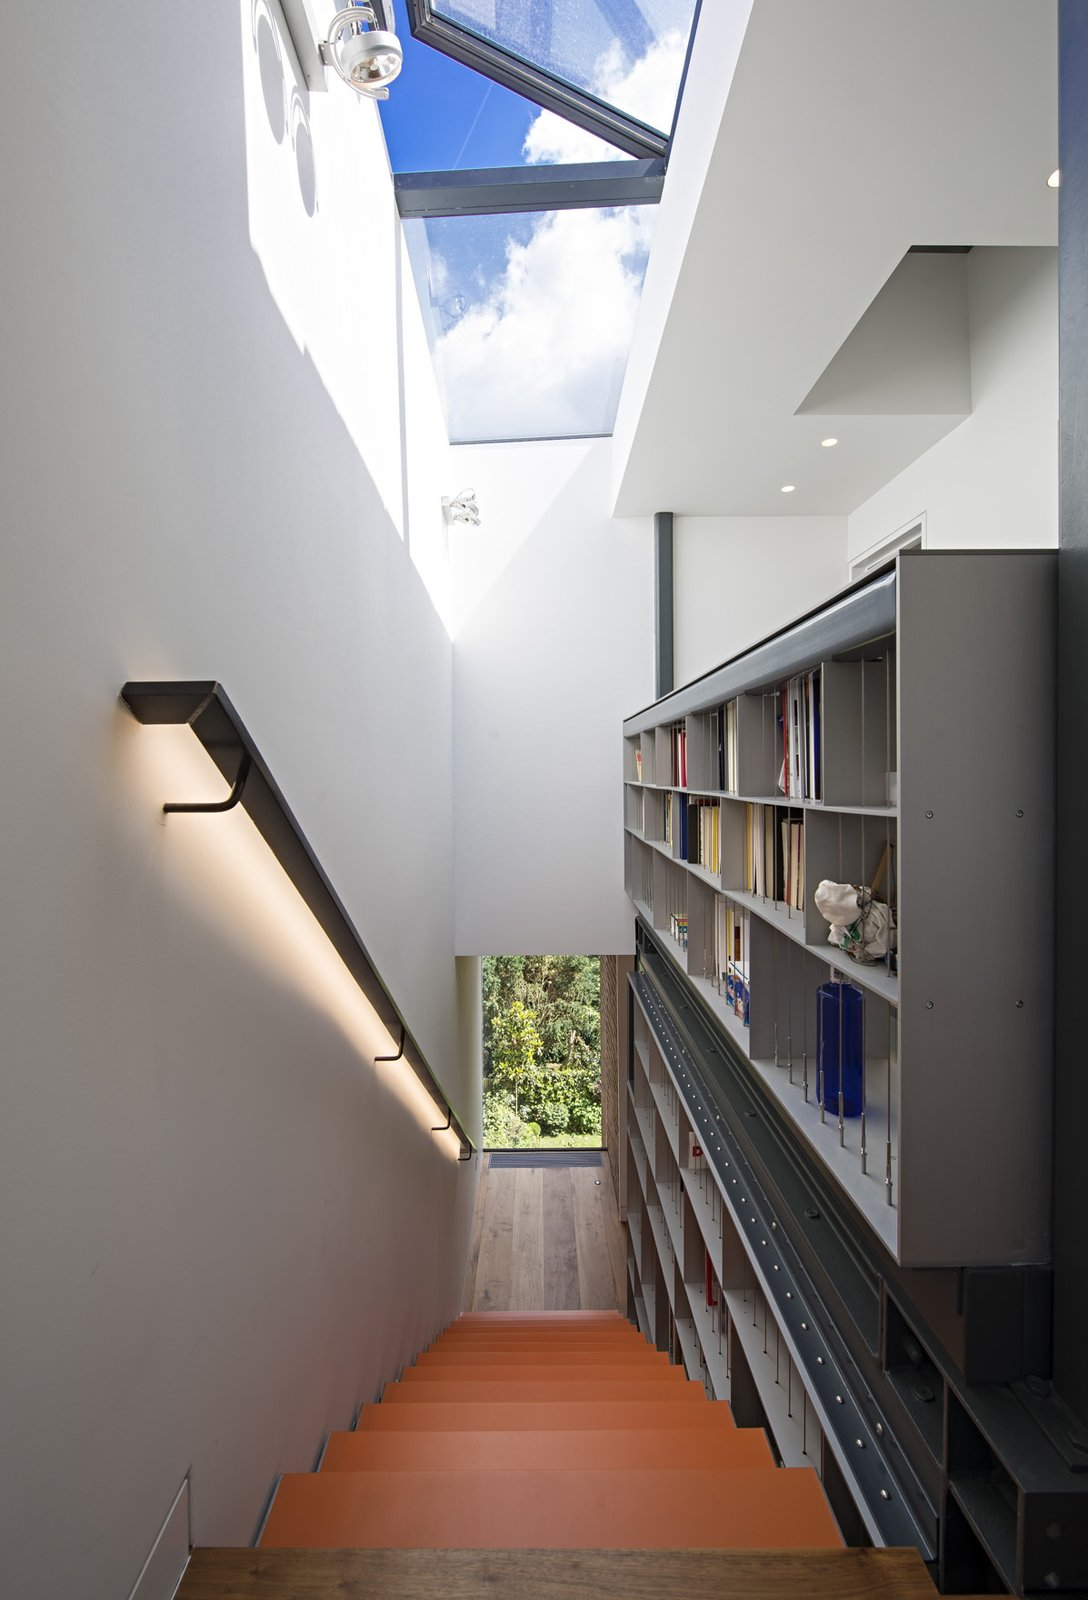 Reaching for the skylight, the five-story staircase is met at the top by the custom bookcase. The skylight opens and closes automatically in response to temperature and weather. This integrated structure is the spine of the house, off of which all other spaces are arranged.  190+ Best Modern Staircase Ideas by Dwell from This Dramatic London Renovation Boasts a Five-Story Bookcase